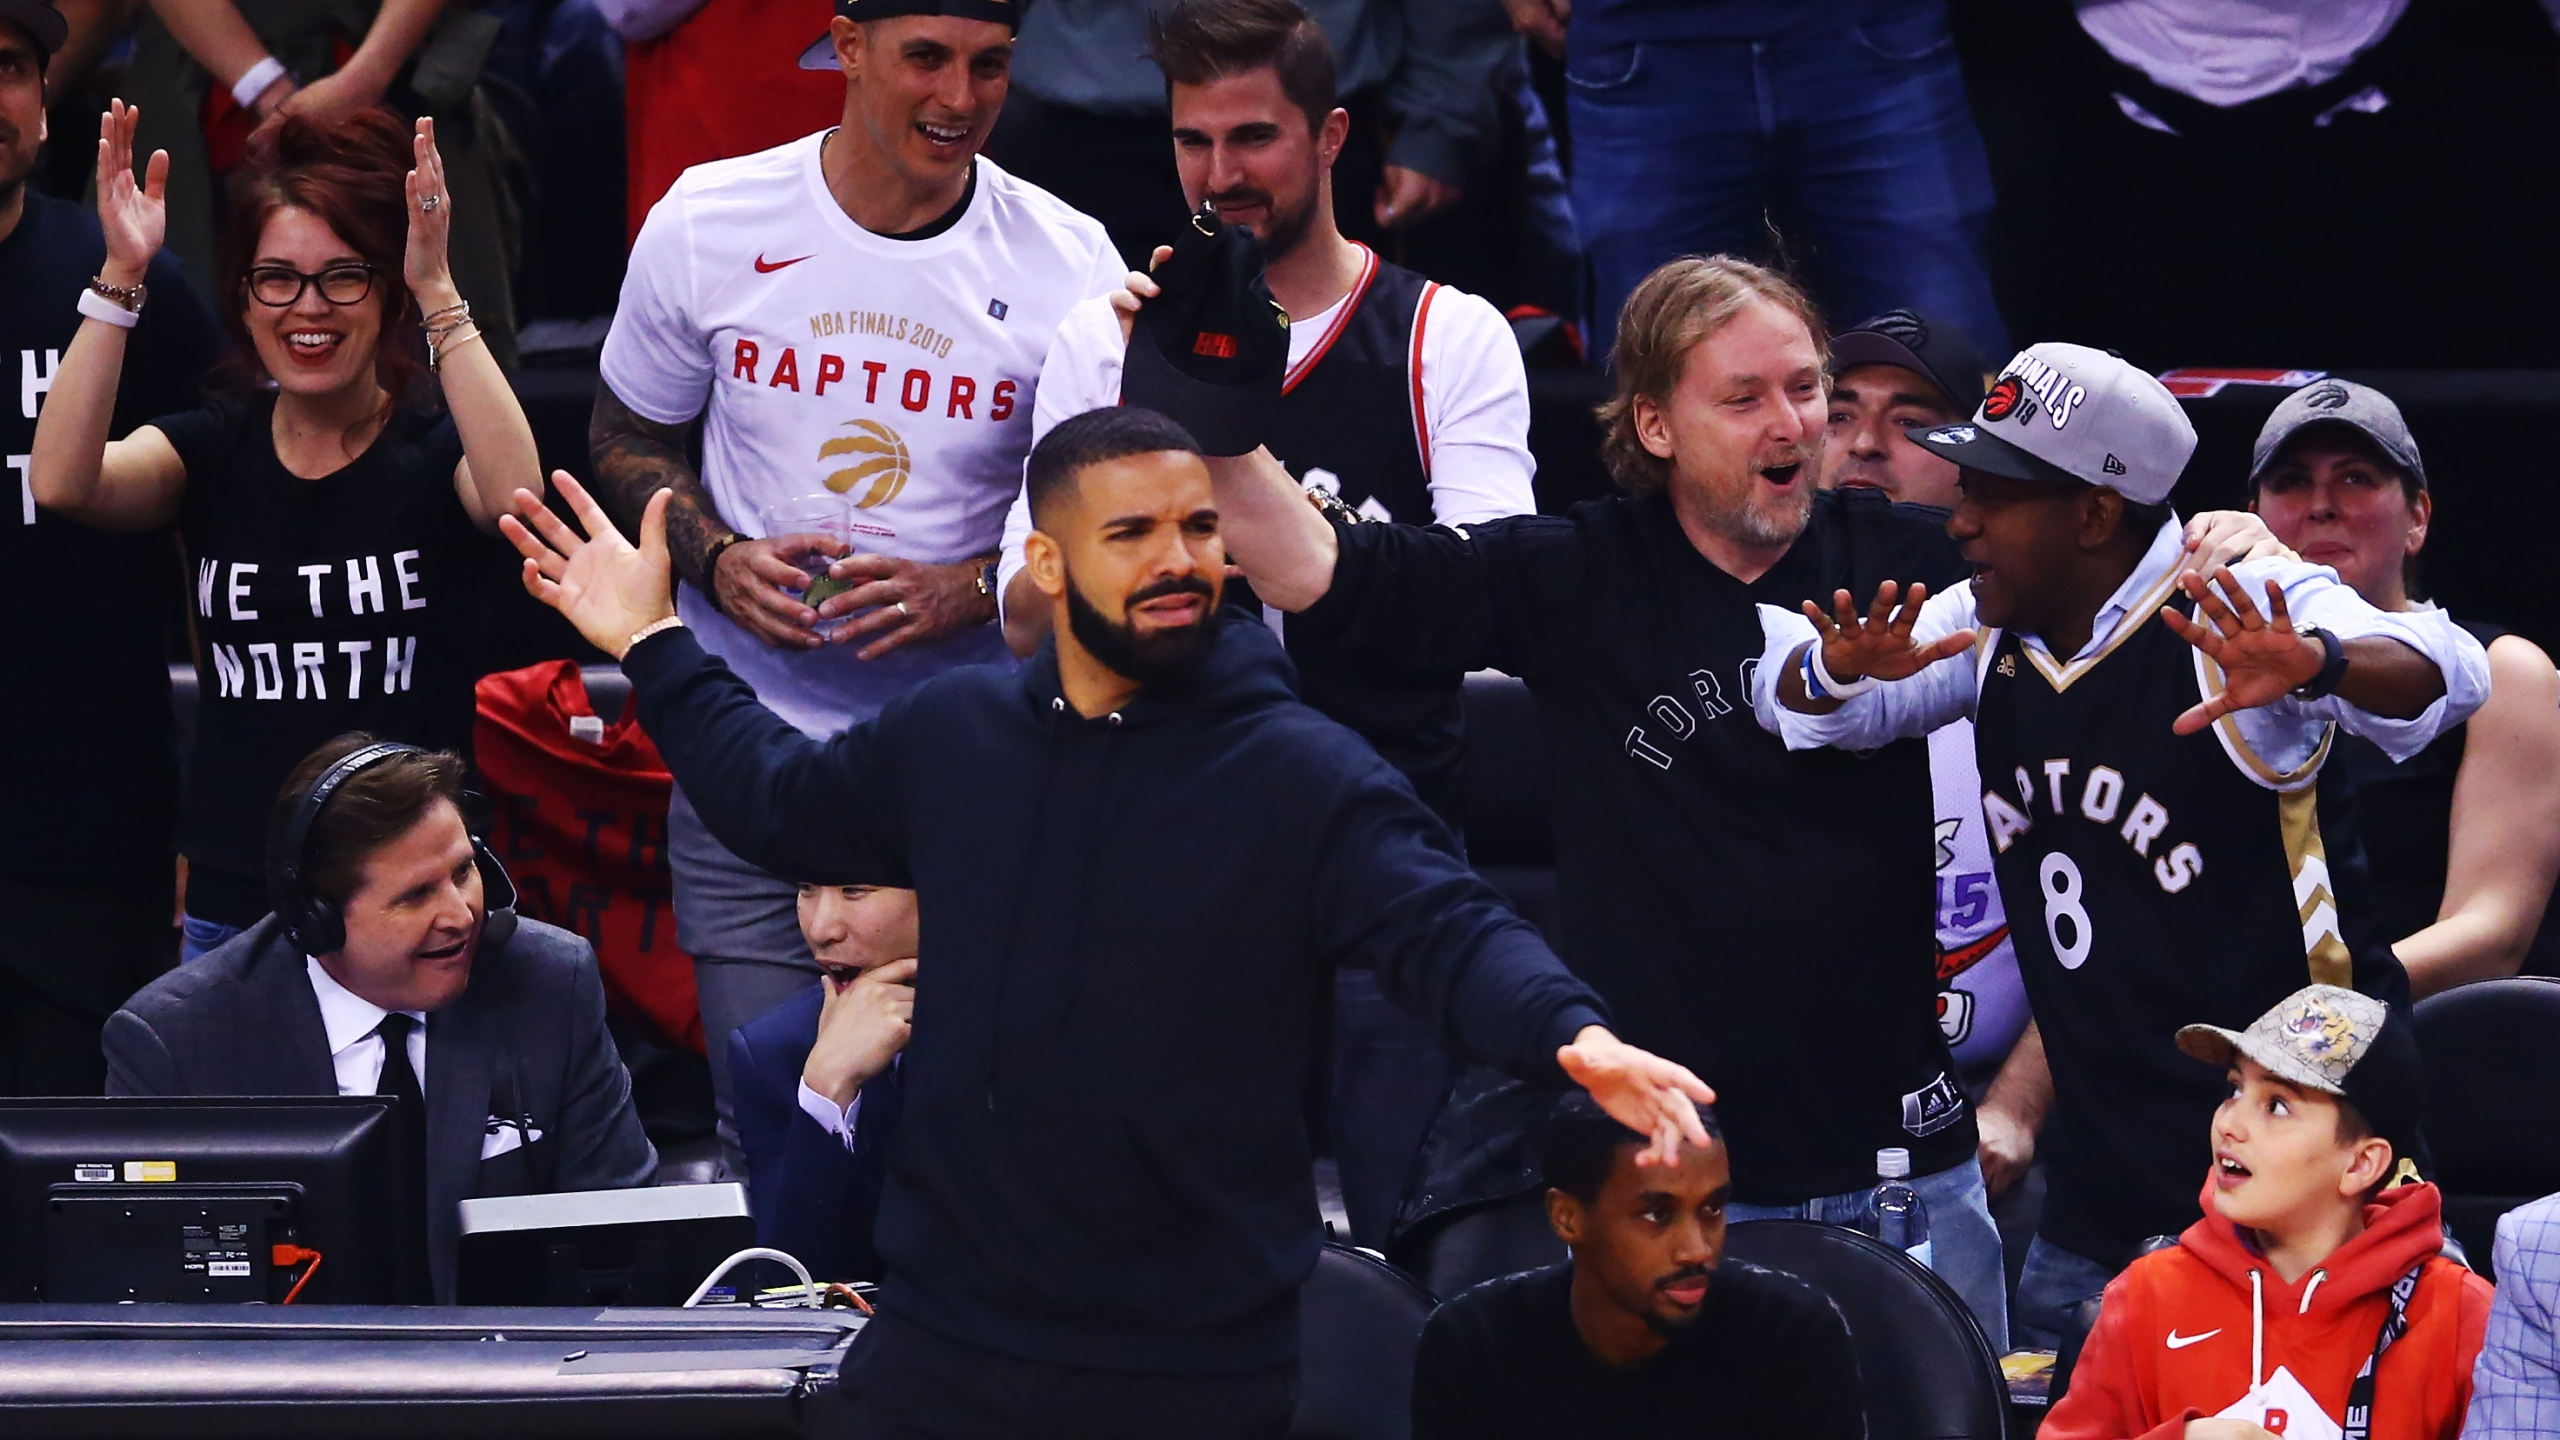 super popular 36830 2b8ba Drake trolls Warriors' Kevin Durant with sweatshirt at Game 2